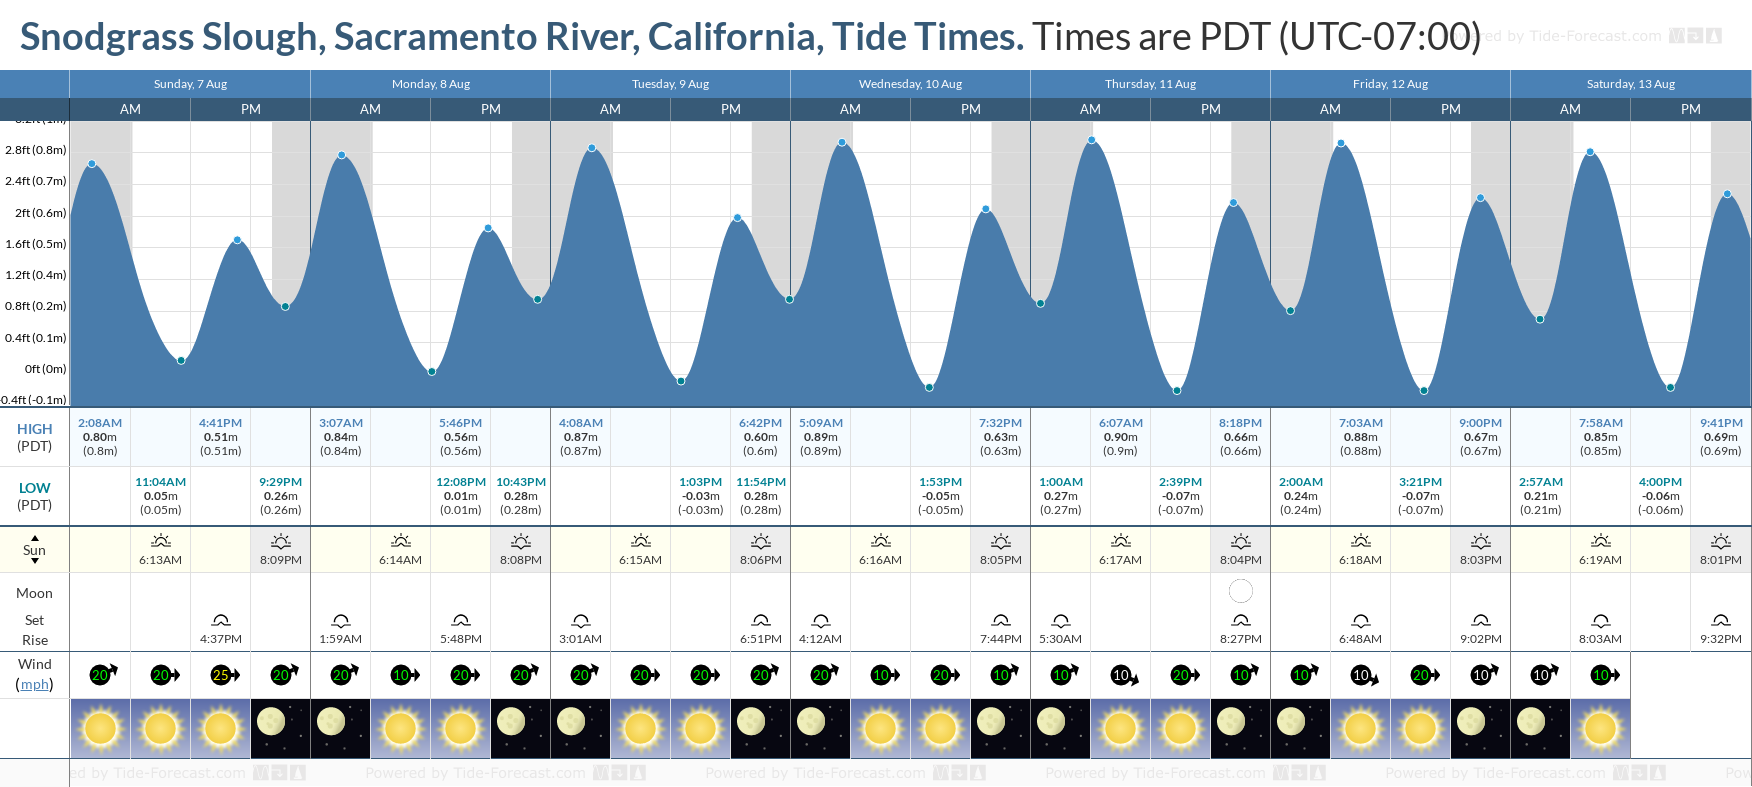 Snodgrass Slough, Sacramento River, California Tide Chart including high and low tide tide times for the next 7 days